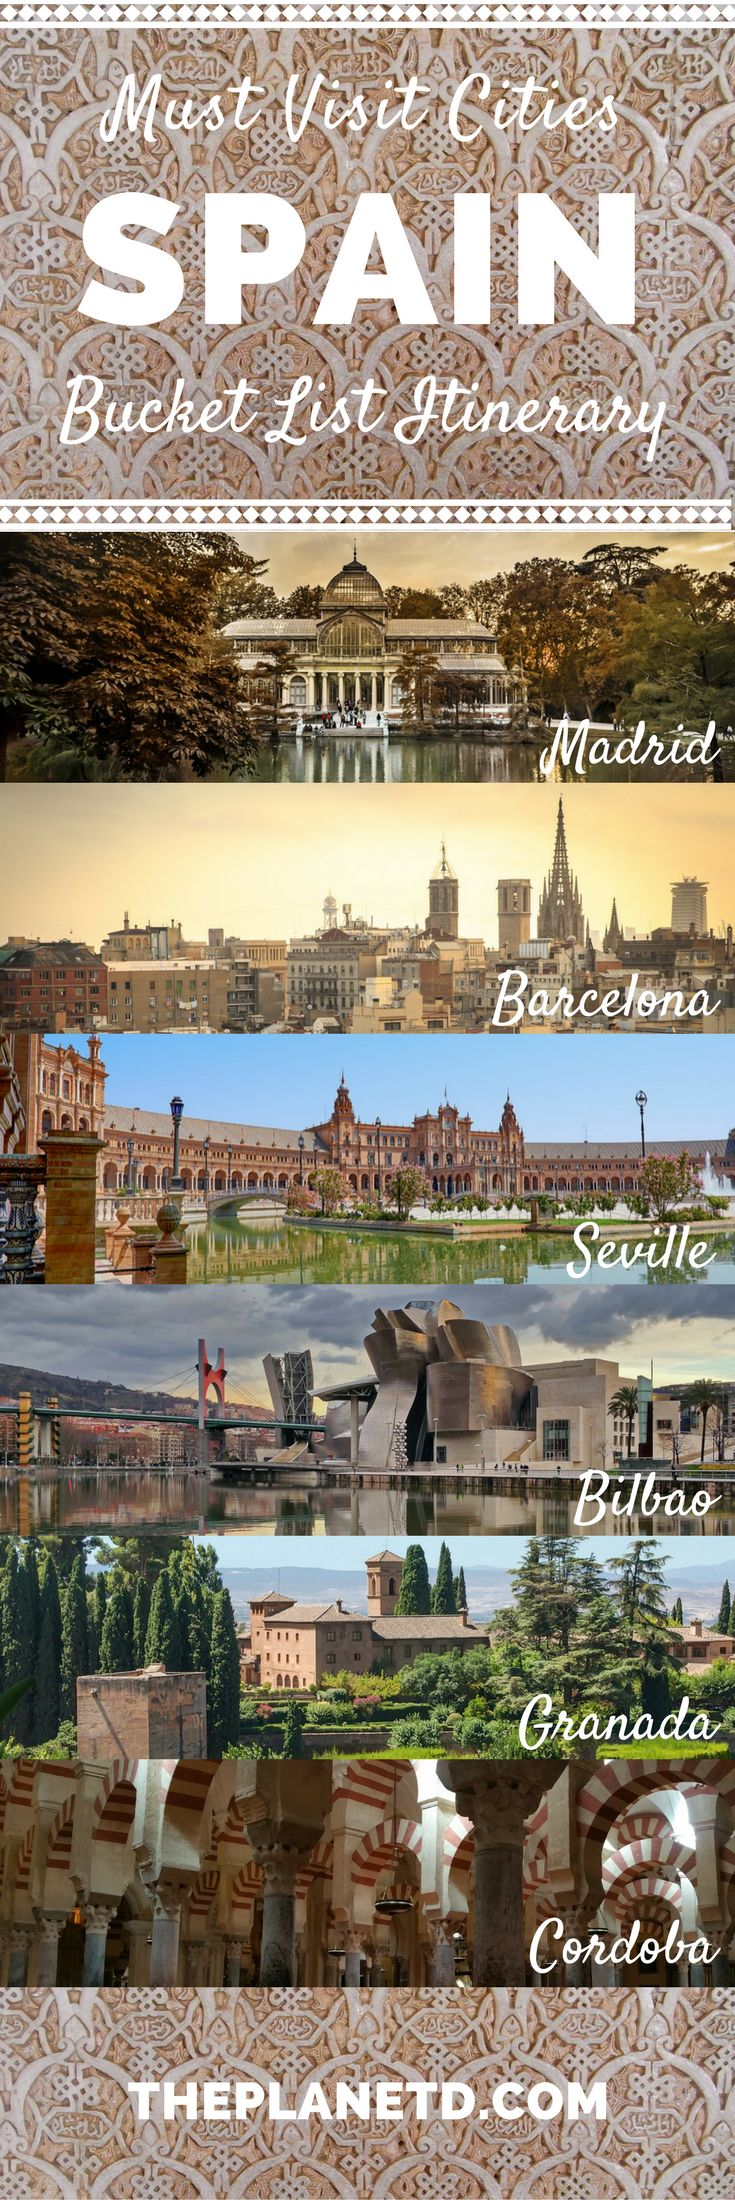 Places in Spain that you absolutely have to visit for their charm, culture and beauty. Bucket list cities for your trip to Spain including Madrid, Barcelona, Seville, Granada, Toledo and more. Best of travel in Europe.   Blog by The Planet D